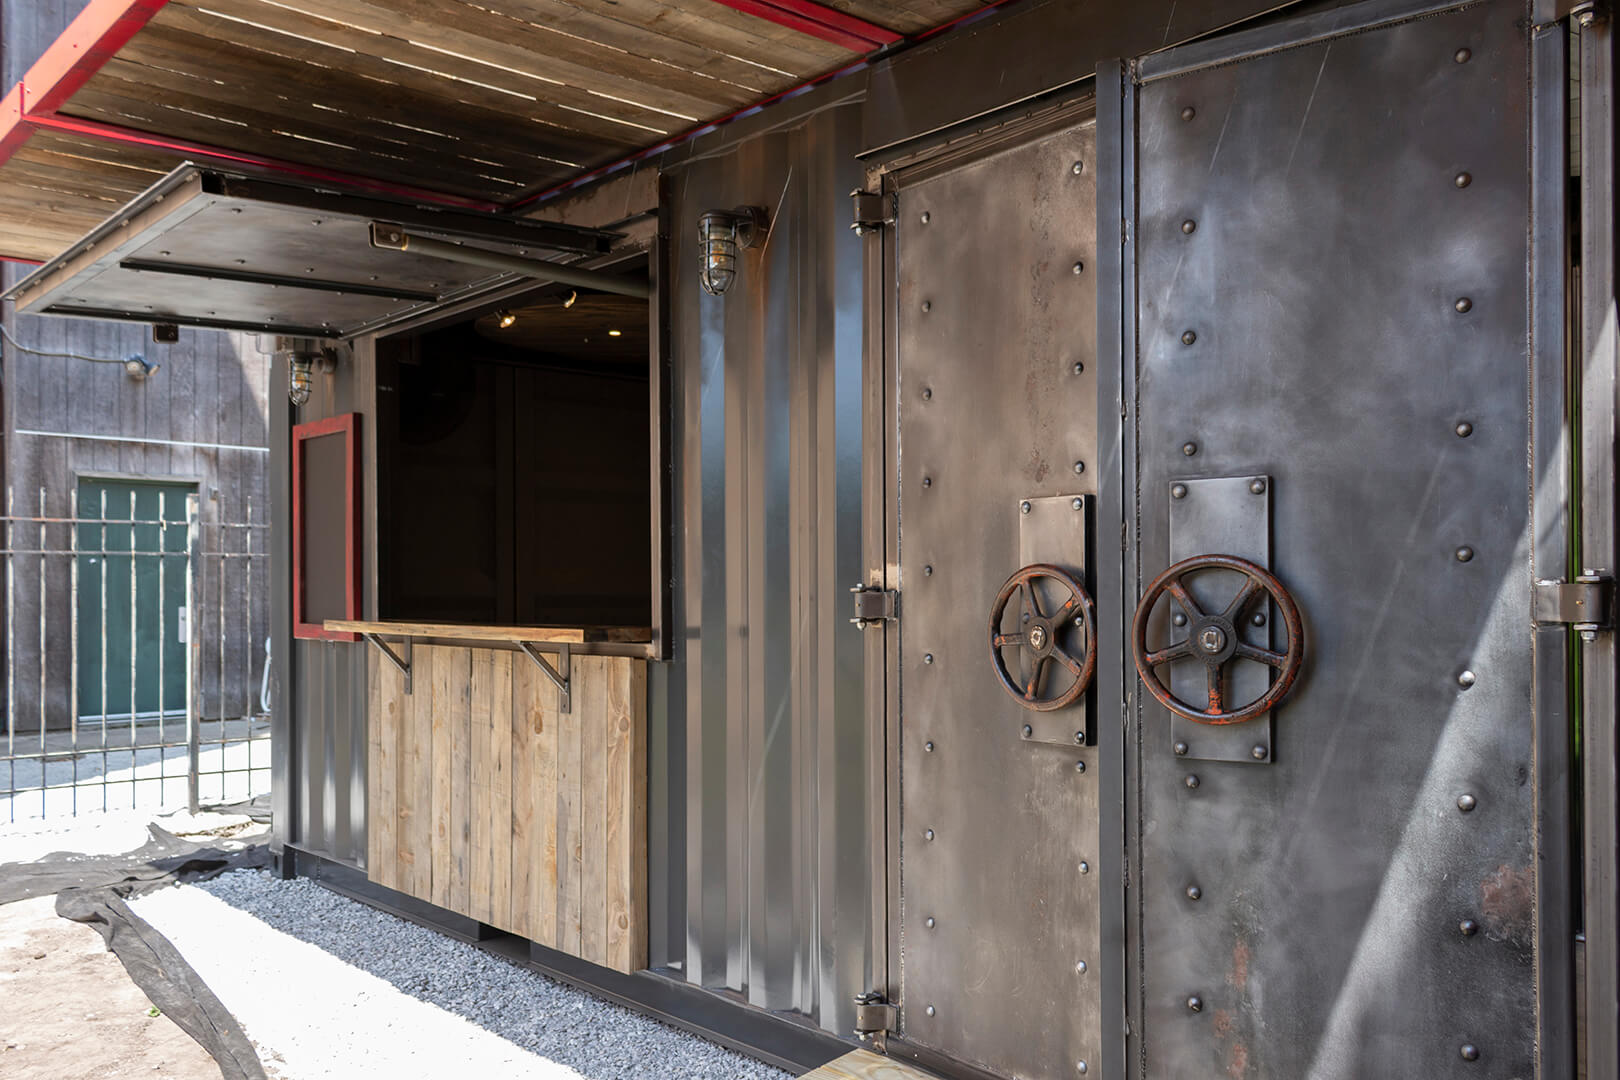 Right-angled view of the Drydock container bar, with the focus on the industrial-style doors